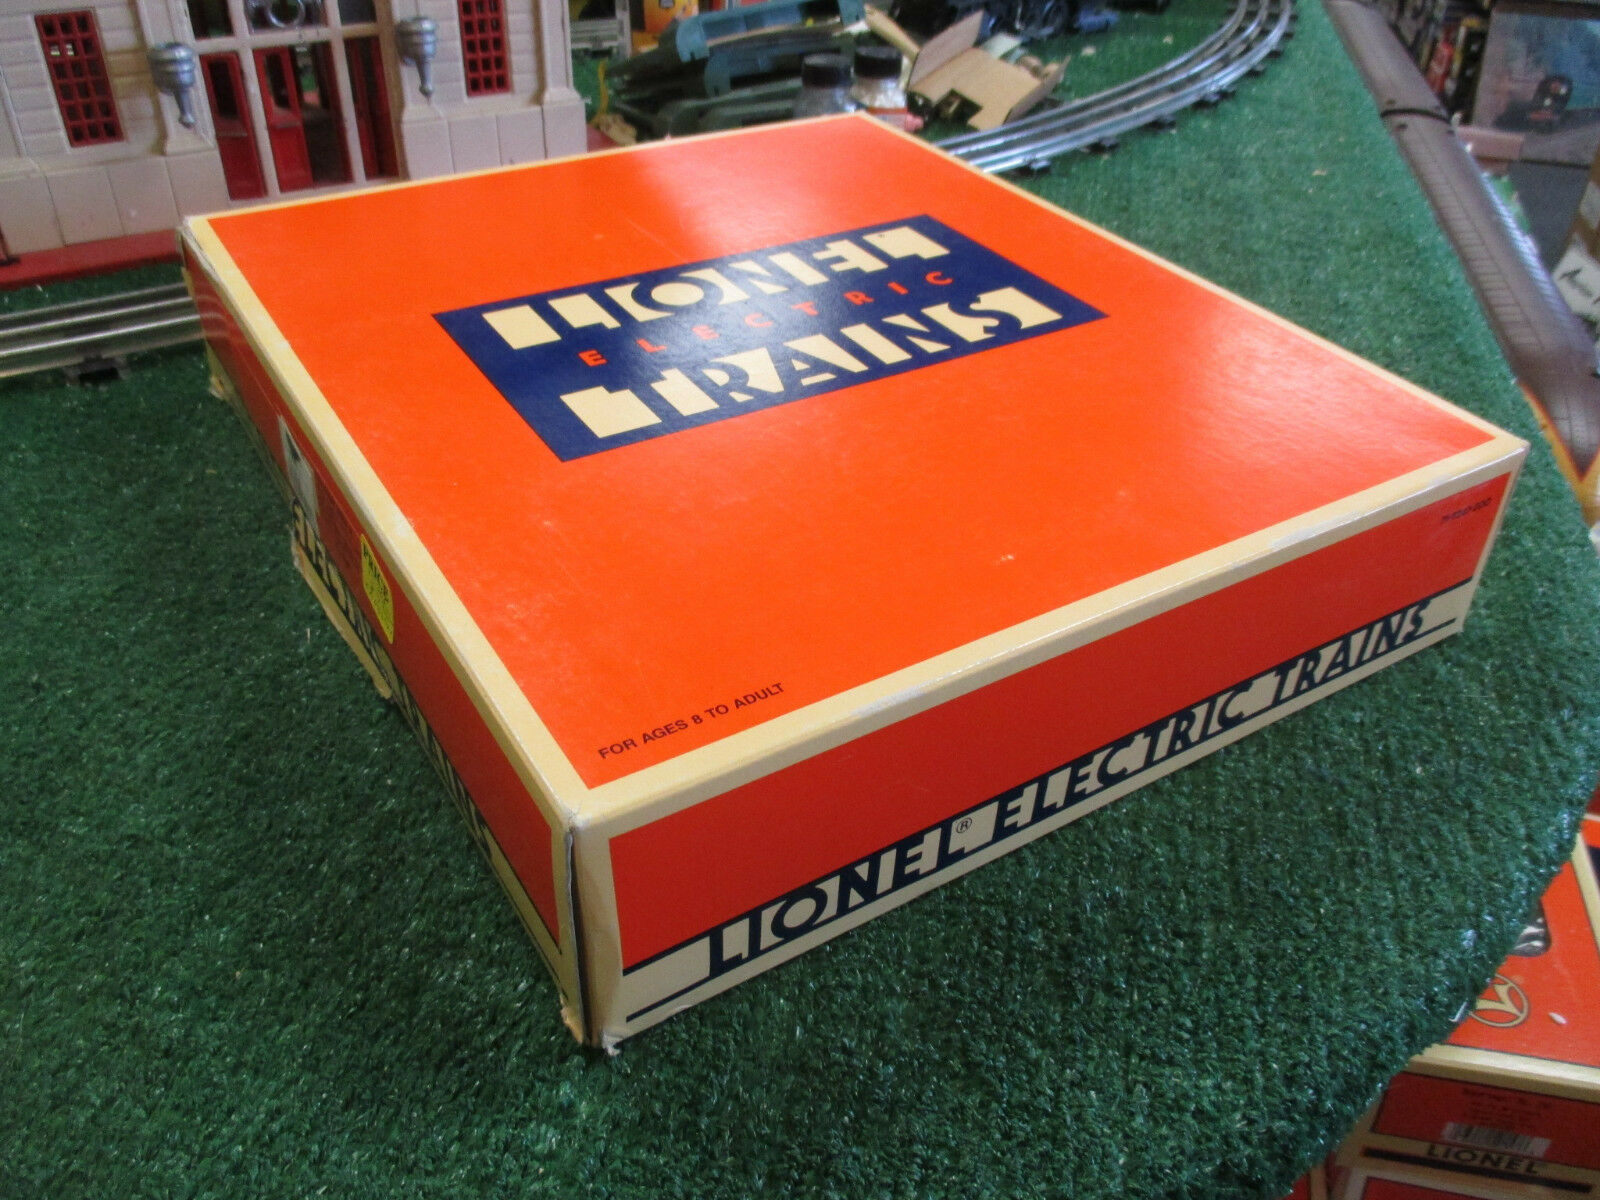 LIONEL MODERN 6-19266 6464 BOXCAR SERIES SET OF 3 BOXCARS NEW IN ORIGINAL BOX